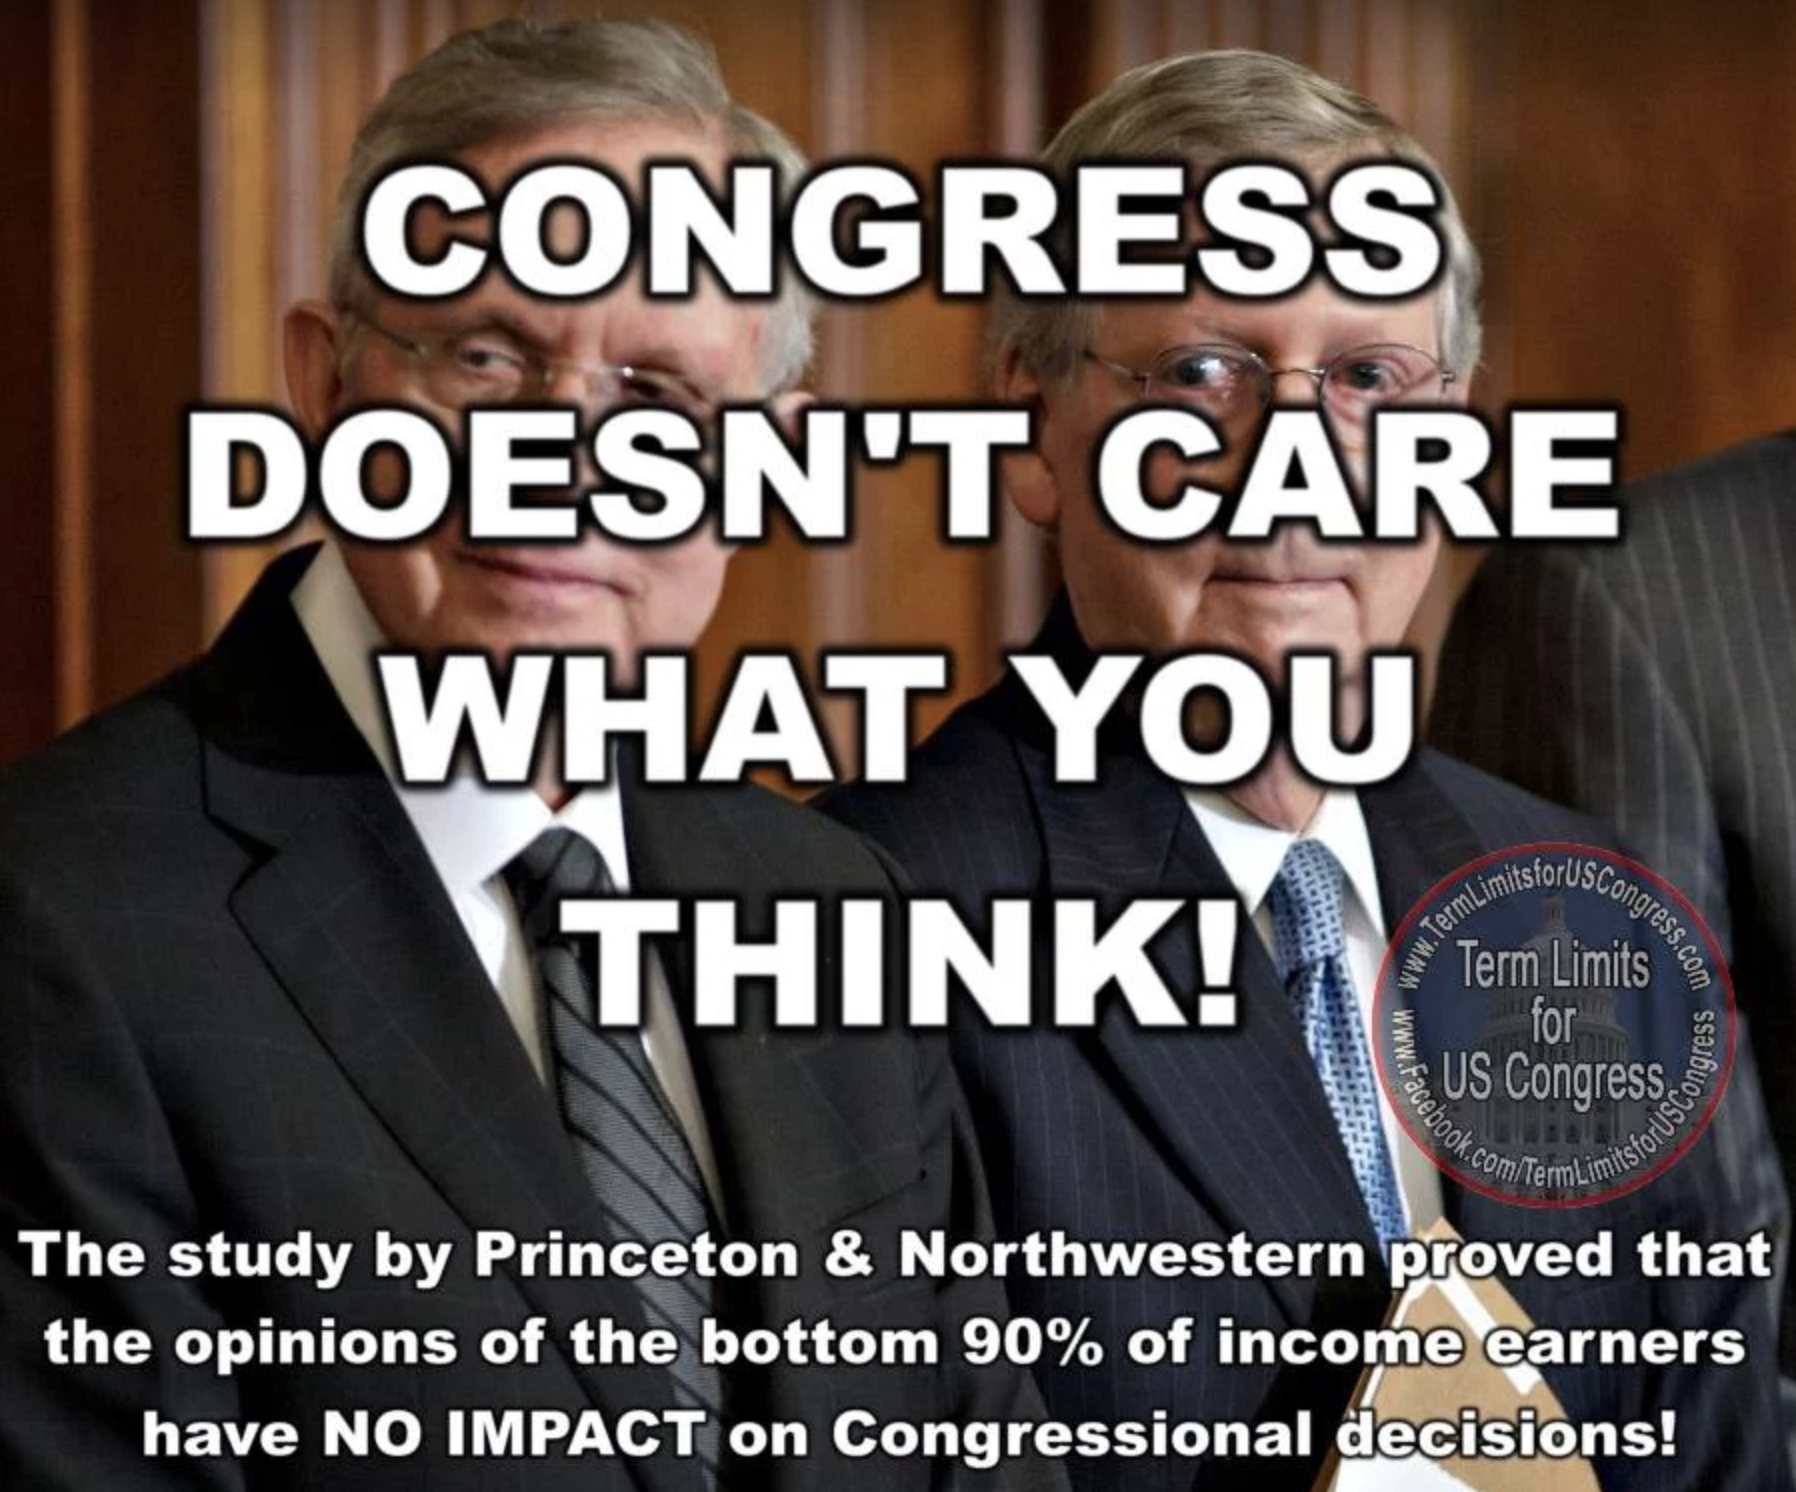 Princeton-study-Congress-doesnt-care-meme